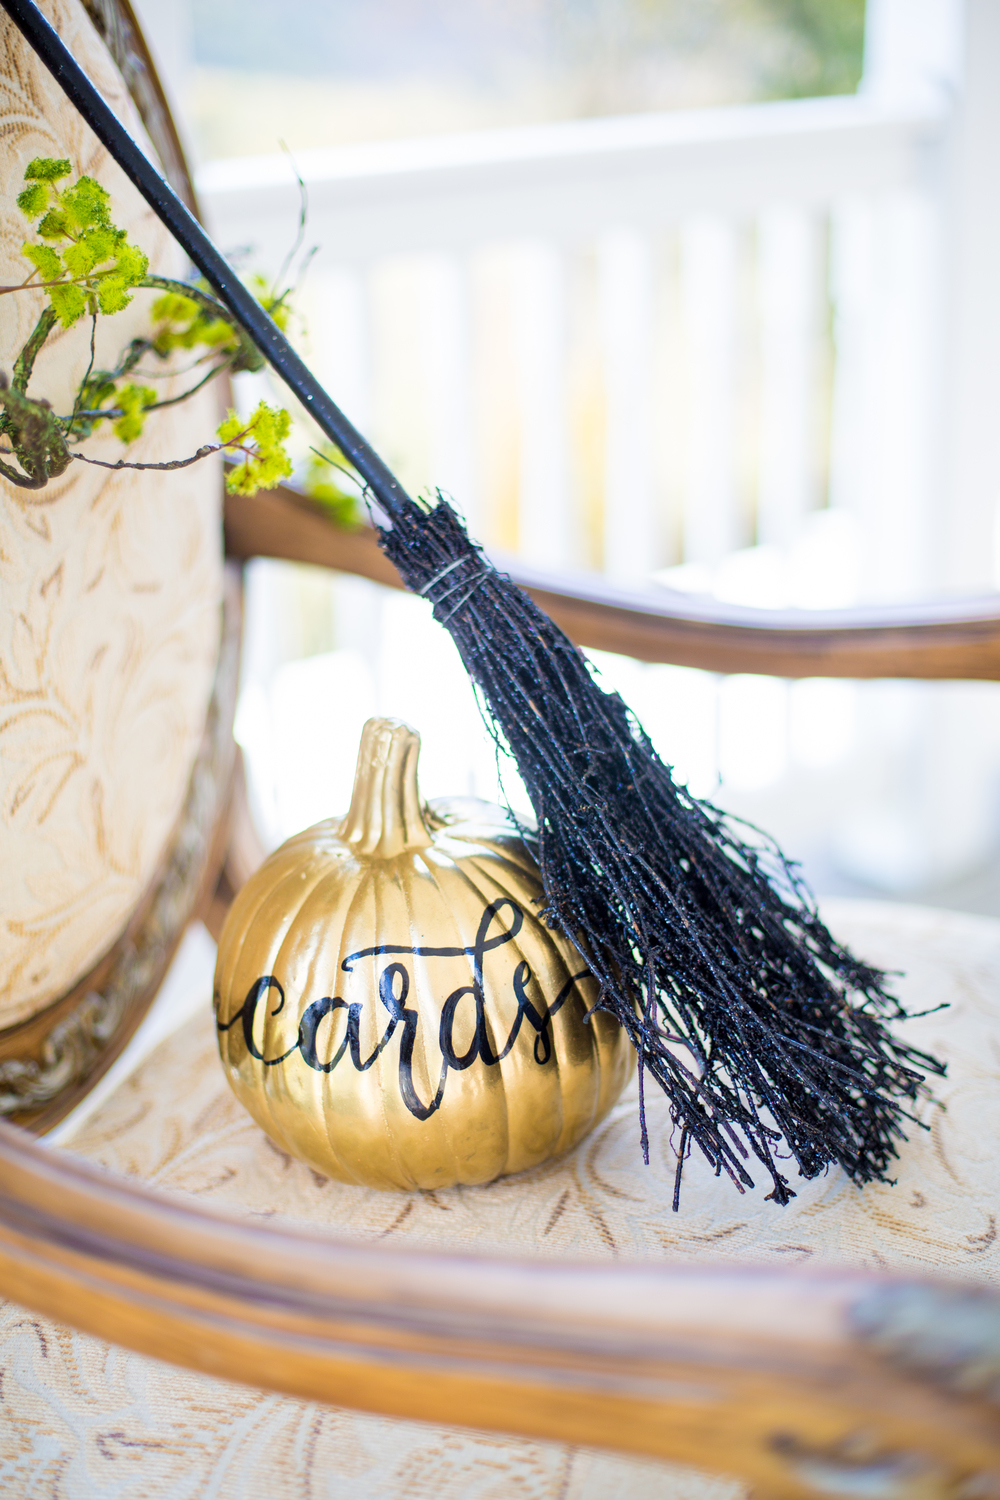 jb-gallery-photography-elegant-halloween-inspiration-halloween-inspiration-shoot-elegant-halloween-theme-halloween-styled-shoot-elegant-halloween-styled-shoot-21